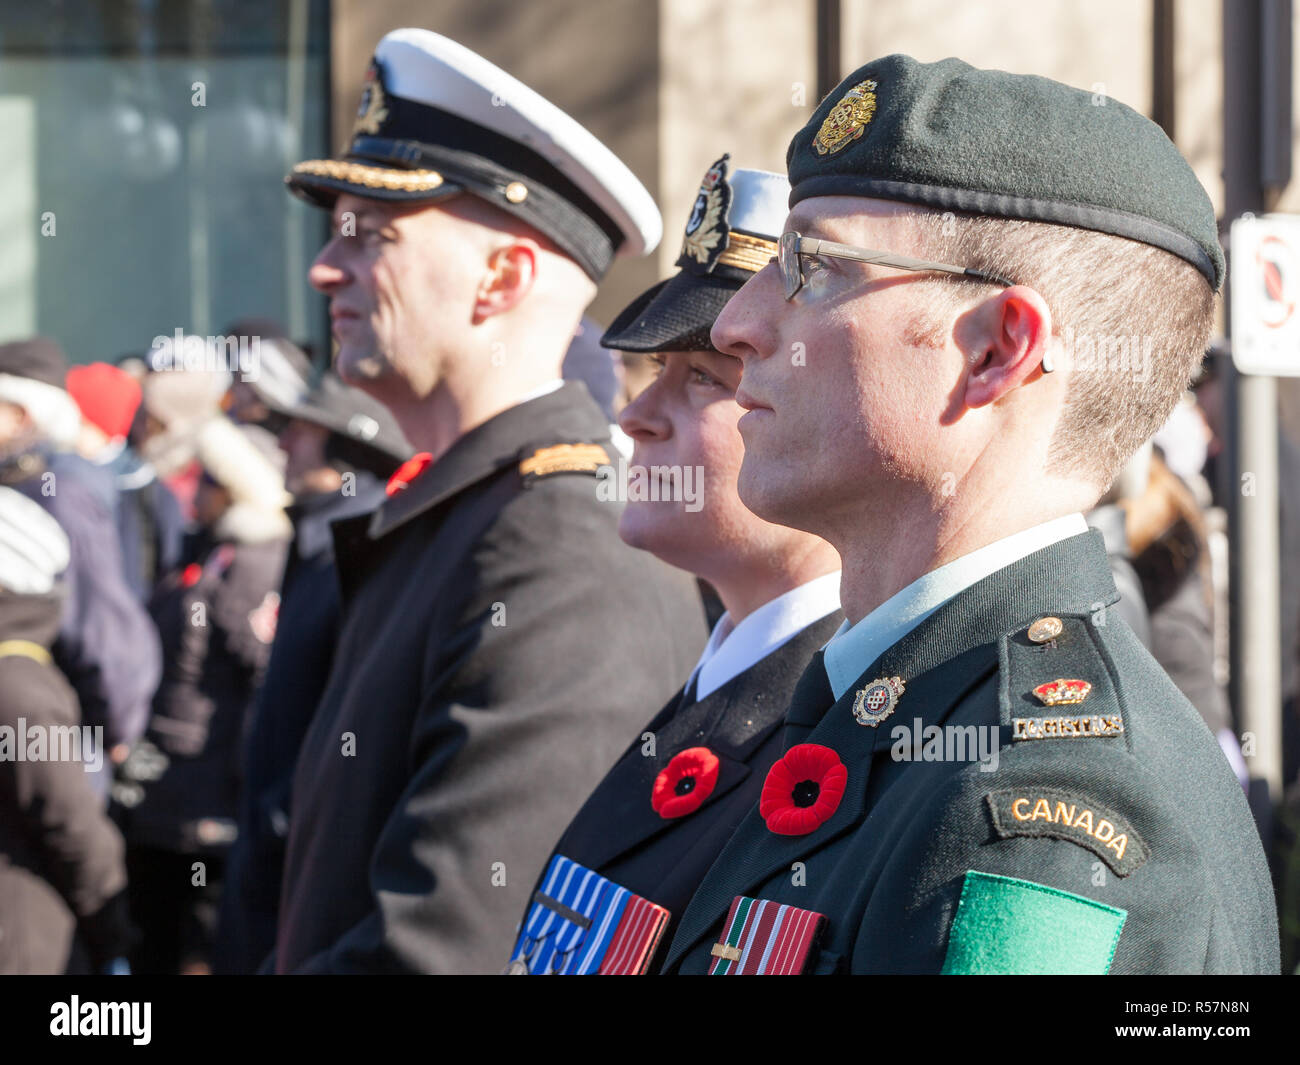 OTTAWA, CANADA - NOVEMBER 11, 2018: Soldiers from Canadian Army, two men, a woman, from Navy & ground forces, wearing remembrance poppy, standing on c - Stock Image